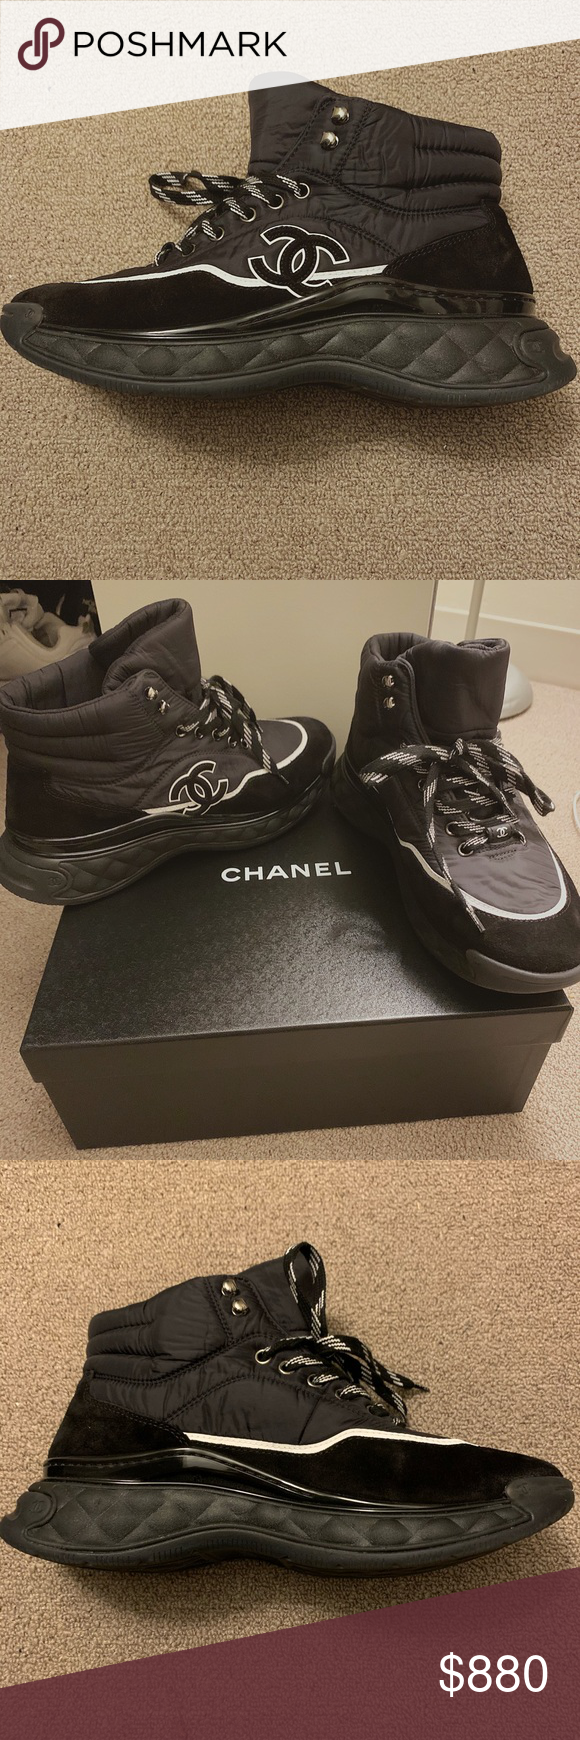 Chanel Sneakers! Brand new (Price